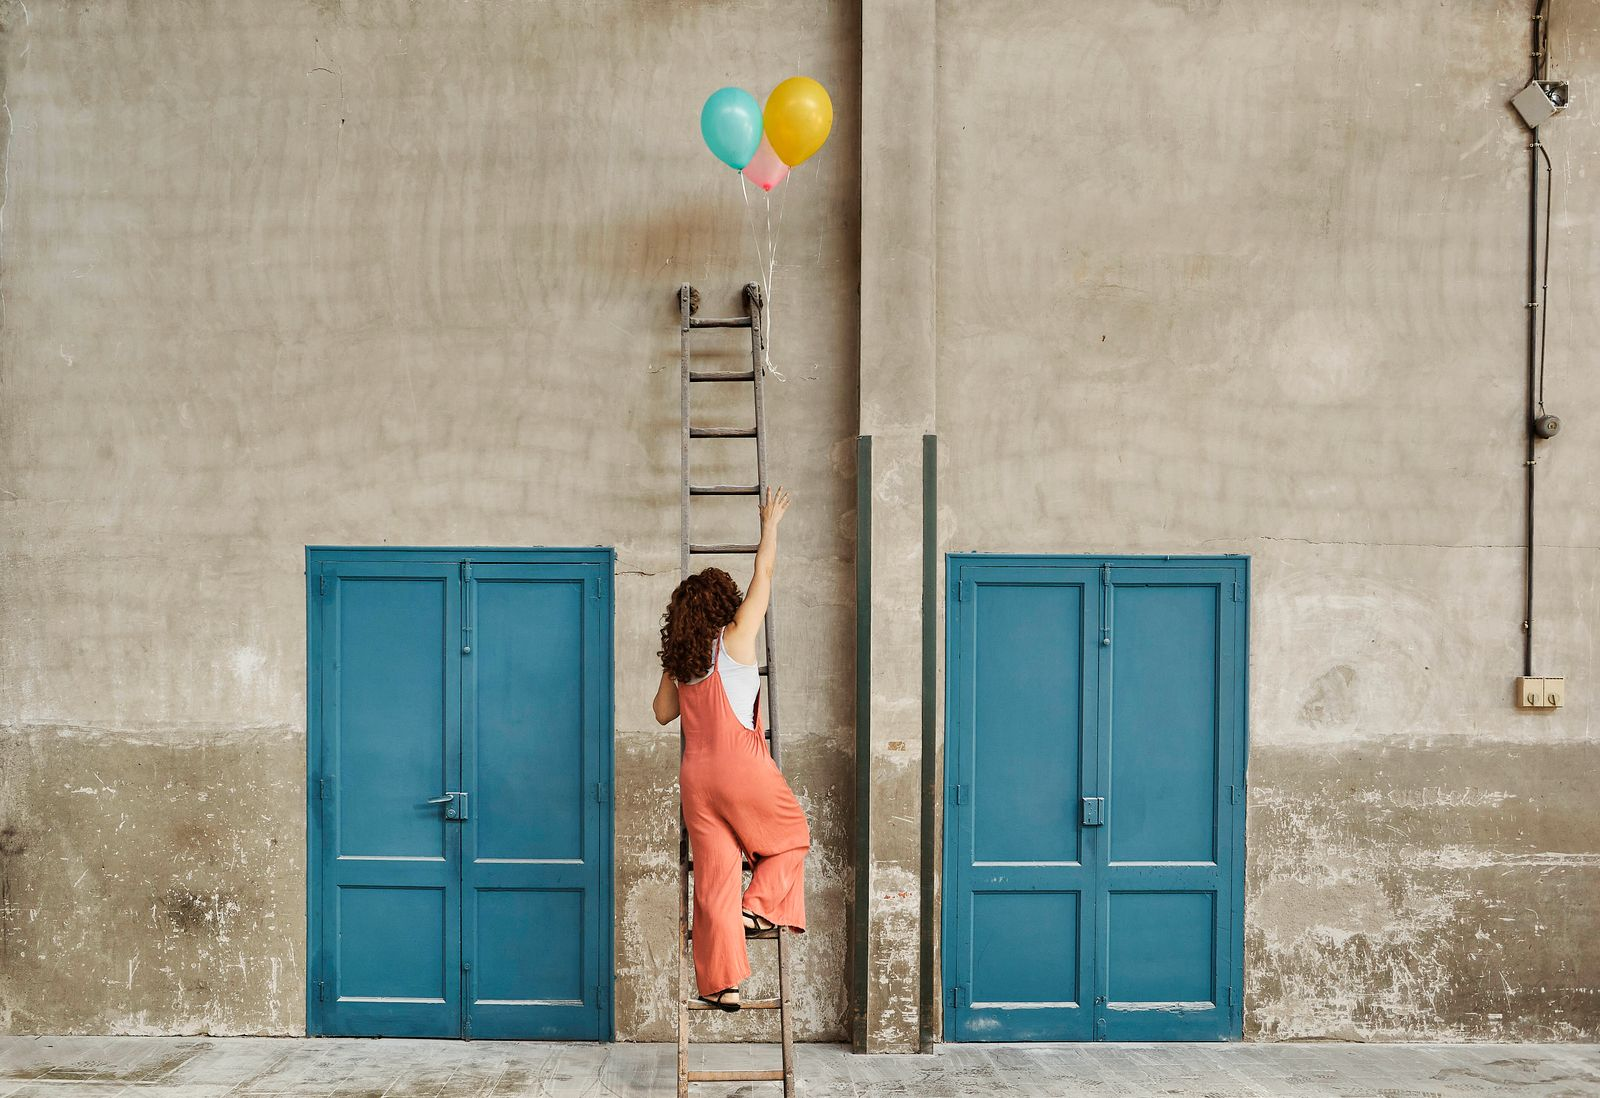 Woman climbing ladder leaning on wall while reaching for colorful helium balloons model released Symbolfoto property rel